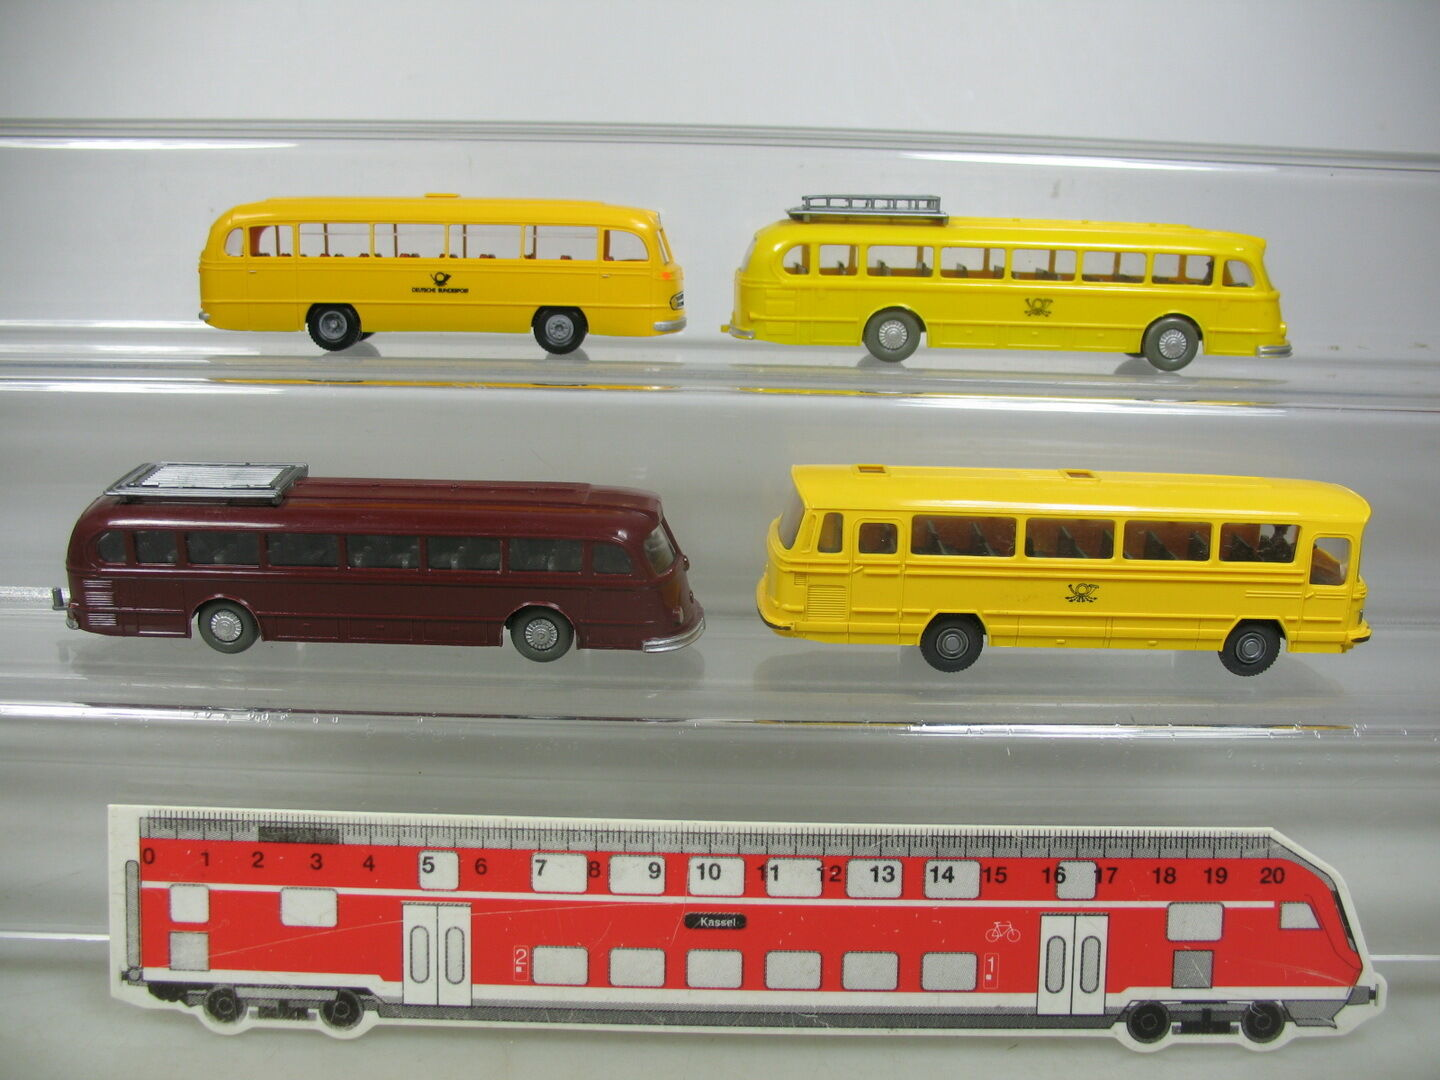 AJ401-0, 5 x Wiking Brekina H0 Bus  Mercedes-Benz MB o 321 Bundespost Etc.